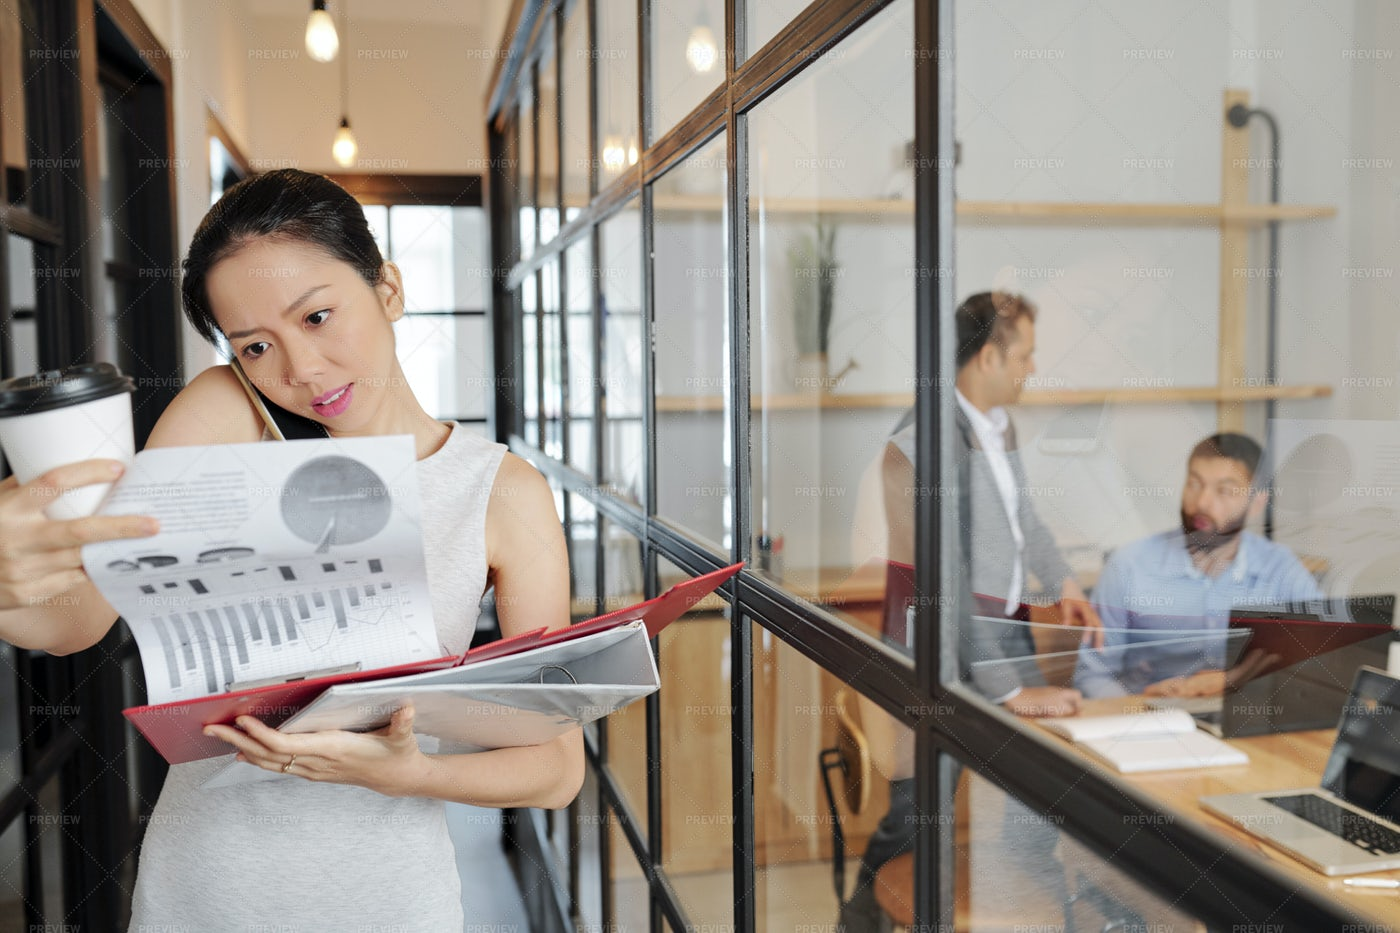 Businesswoman Has A Consultation On The: Stock Photos